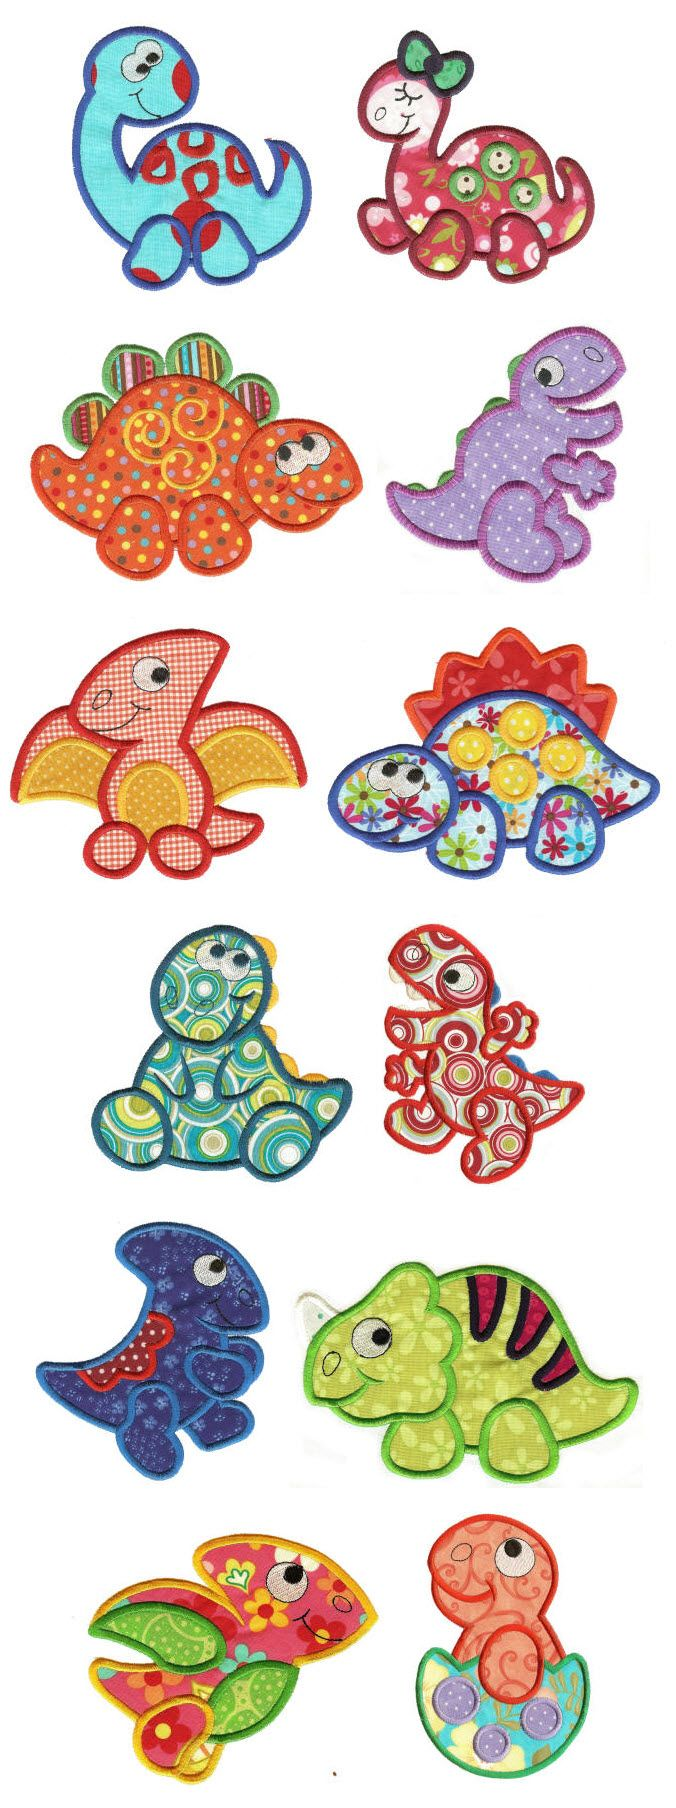 Embroidery   Free Machine Embroidery Designs   Dino Crossing ...